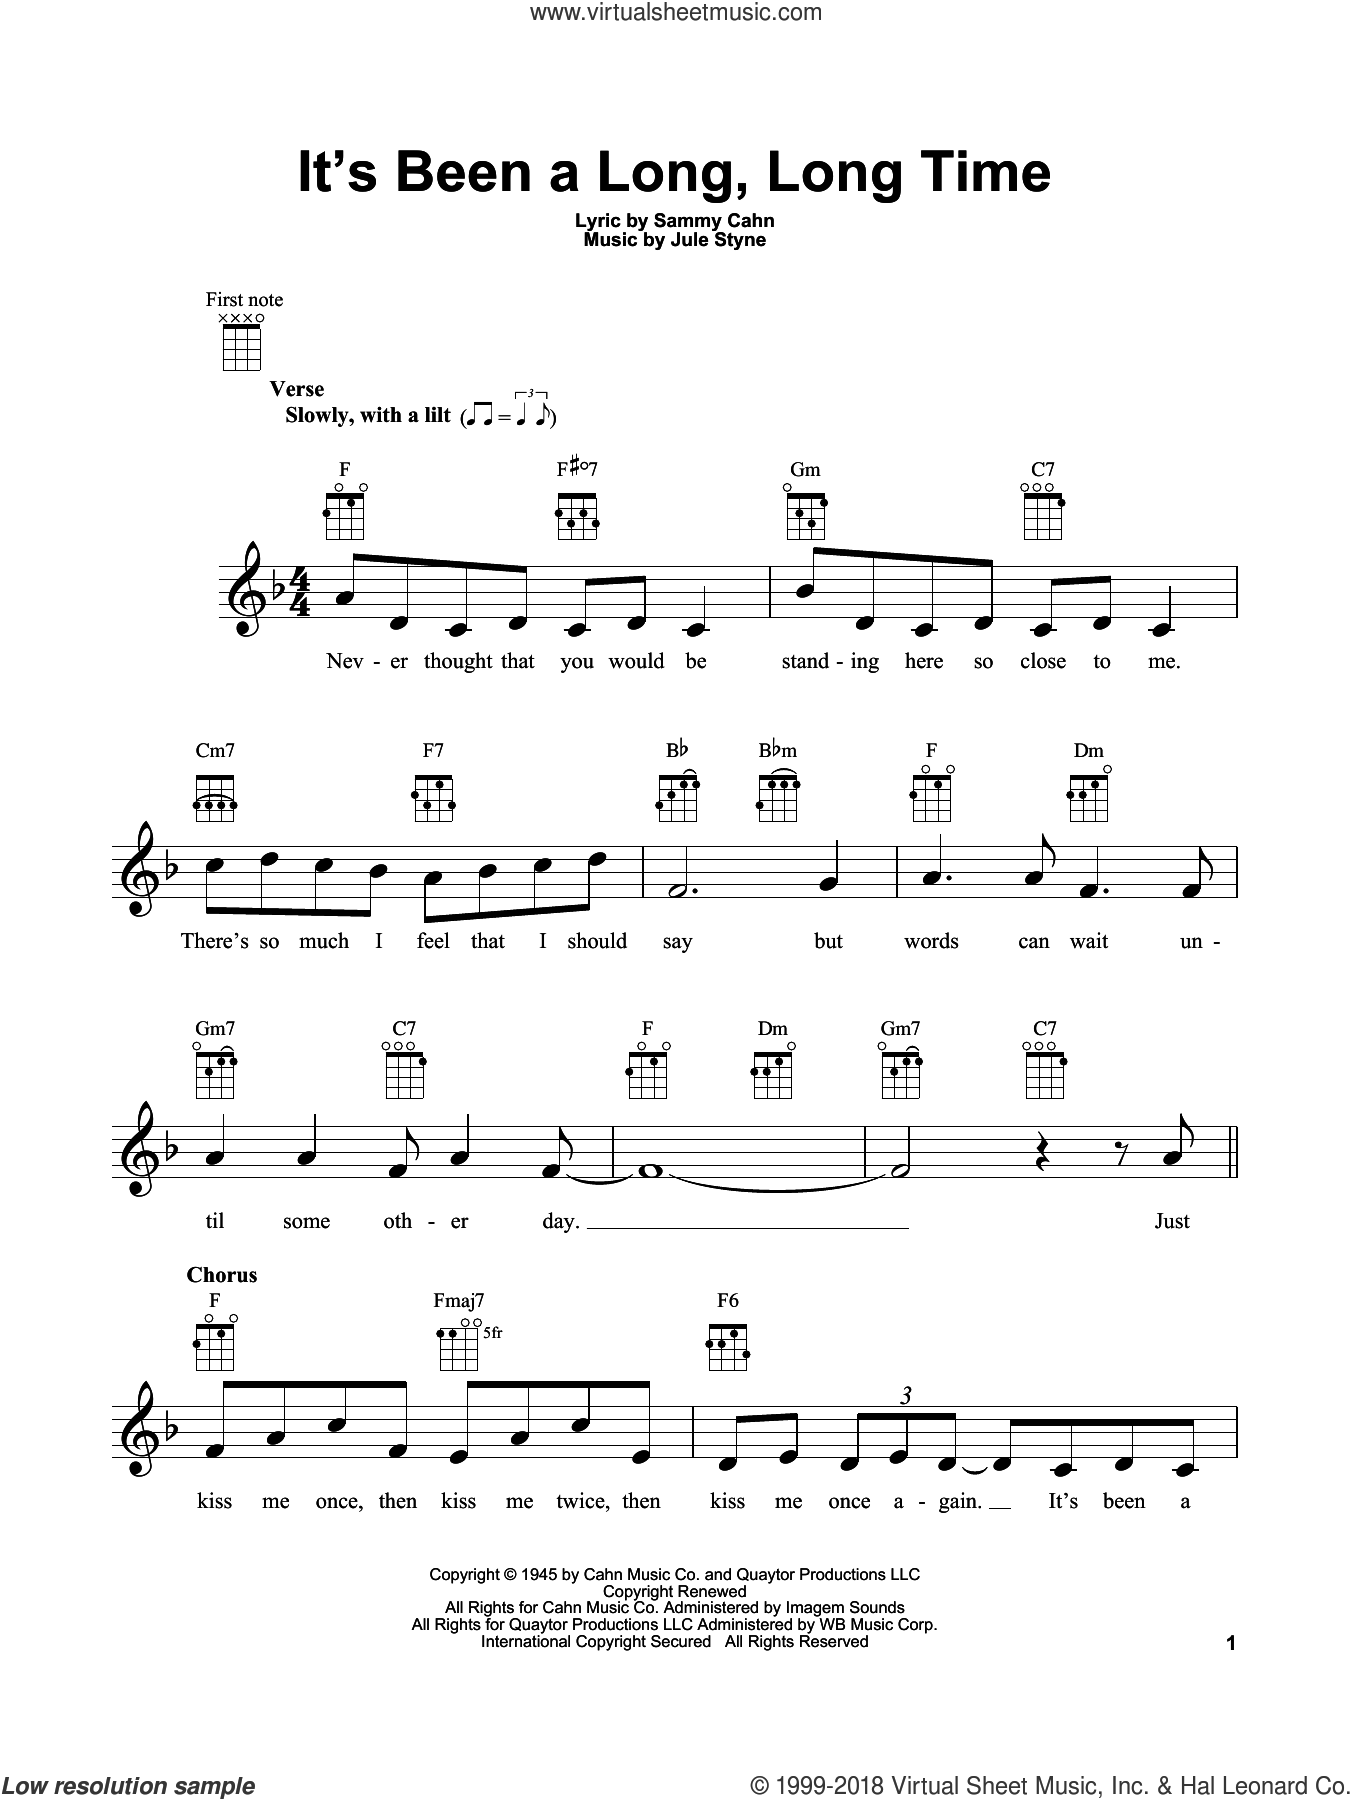 It's Been A Long, Long Time sheet music for ukulele by Sammy Cahn and Jule Styne, intermediate skill level